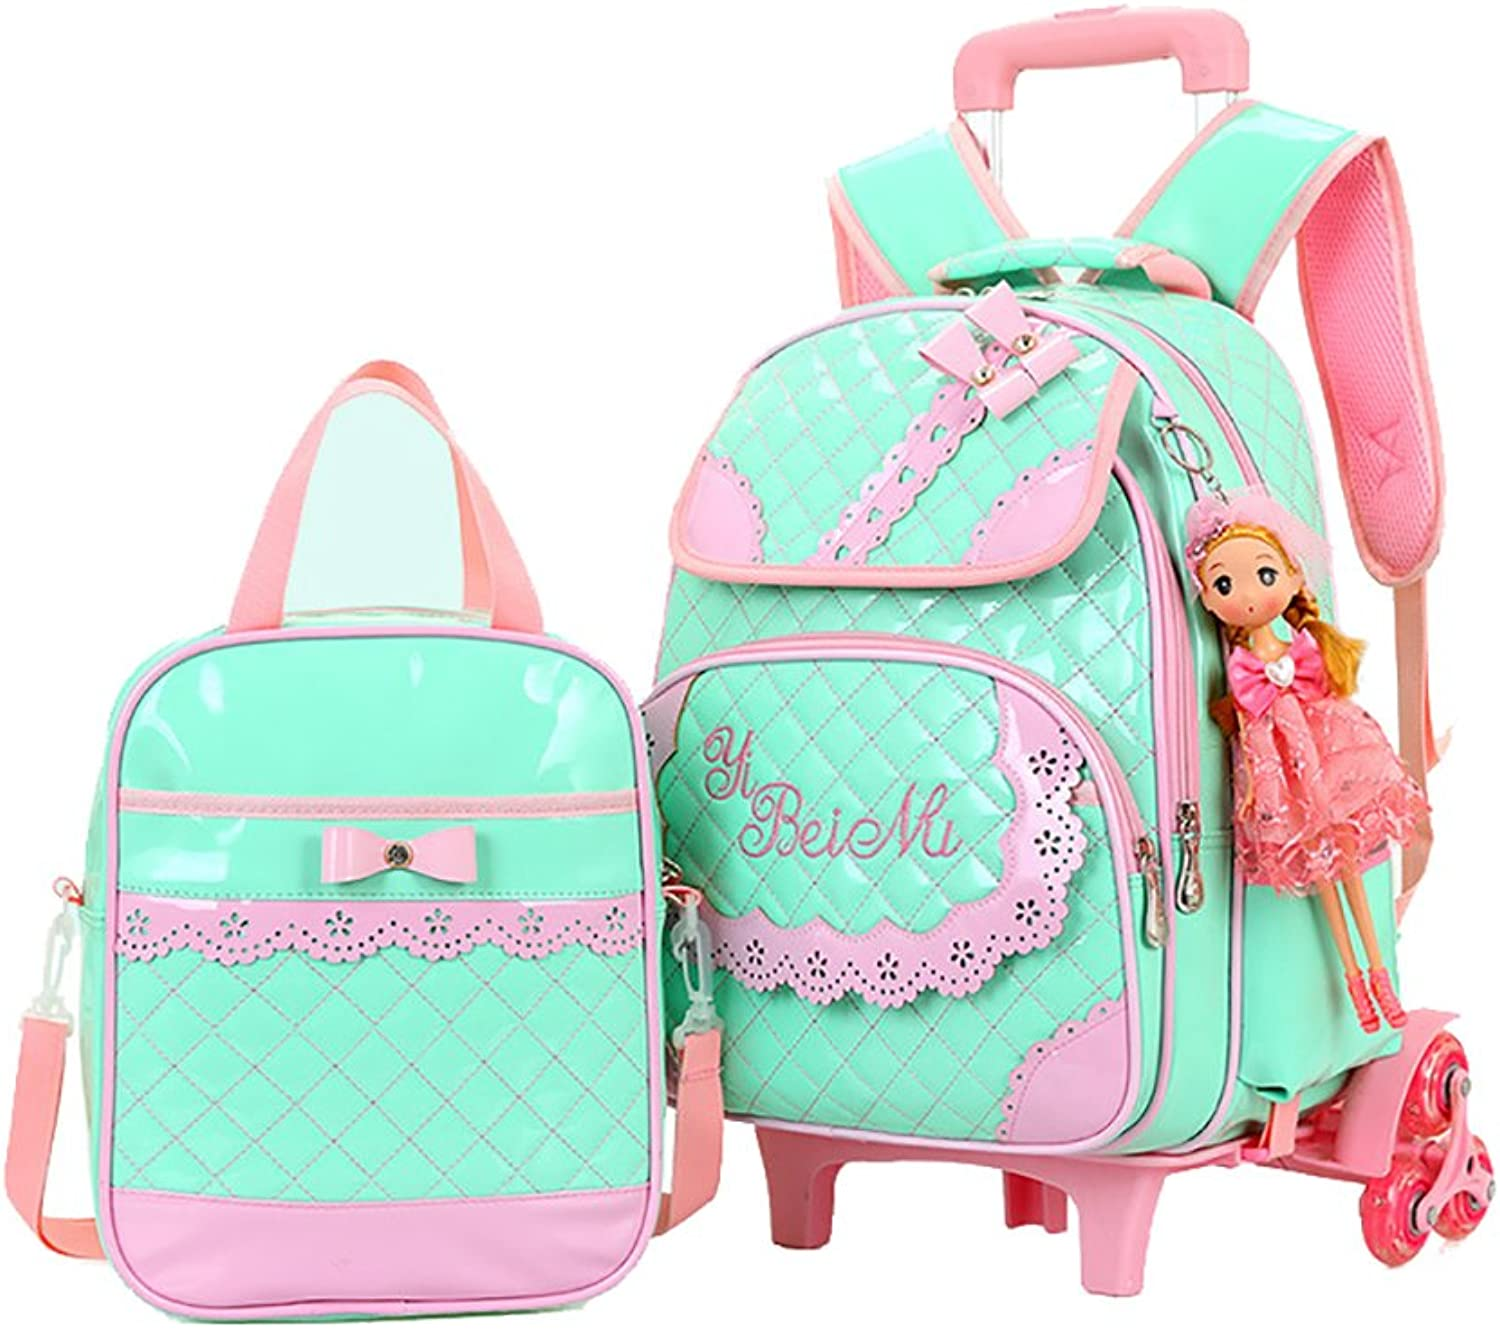 Belify Rolling Backpacks for Girls School Bags Trolley Handbag with Lunch Bag